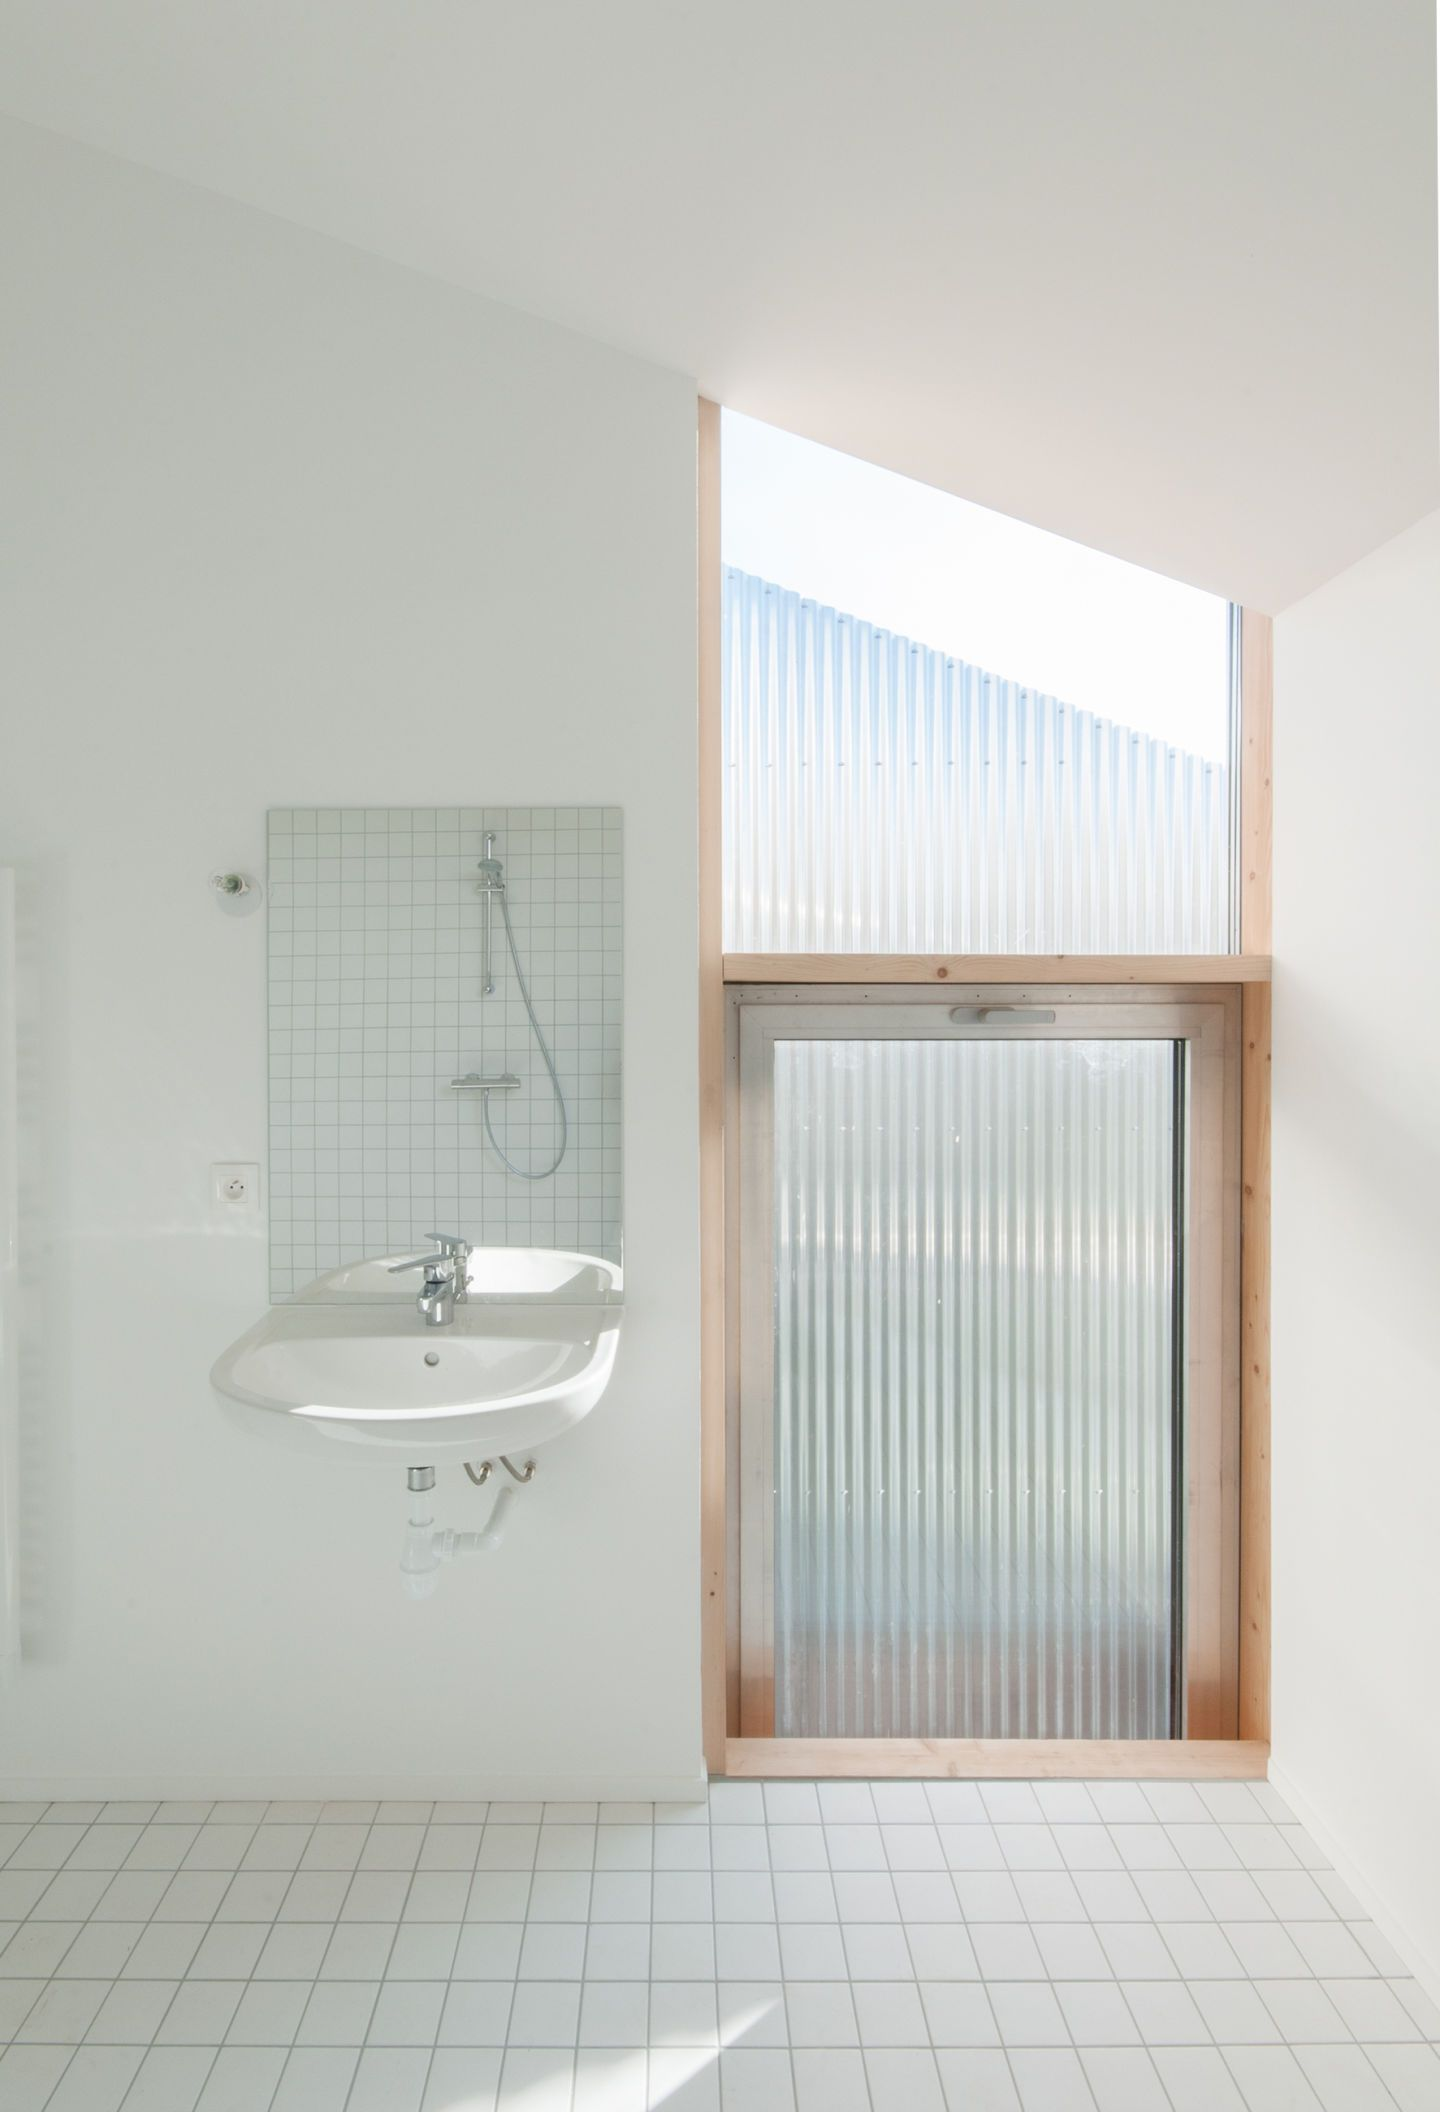 Merging Elderly Housing In A Village And Some More Contemporary Enchanting Bathroom Design For Elderly Design Ideas